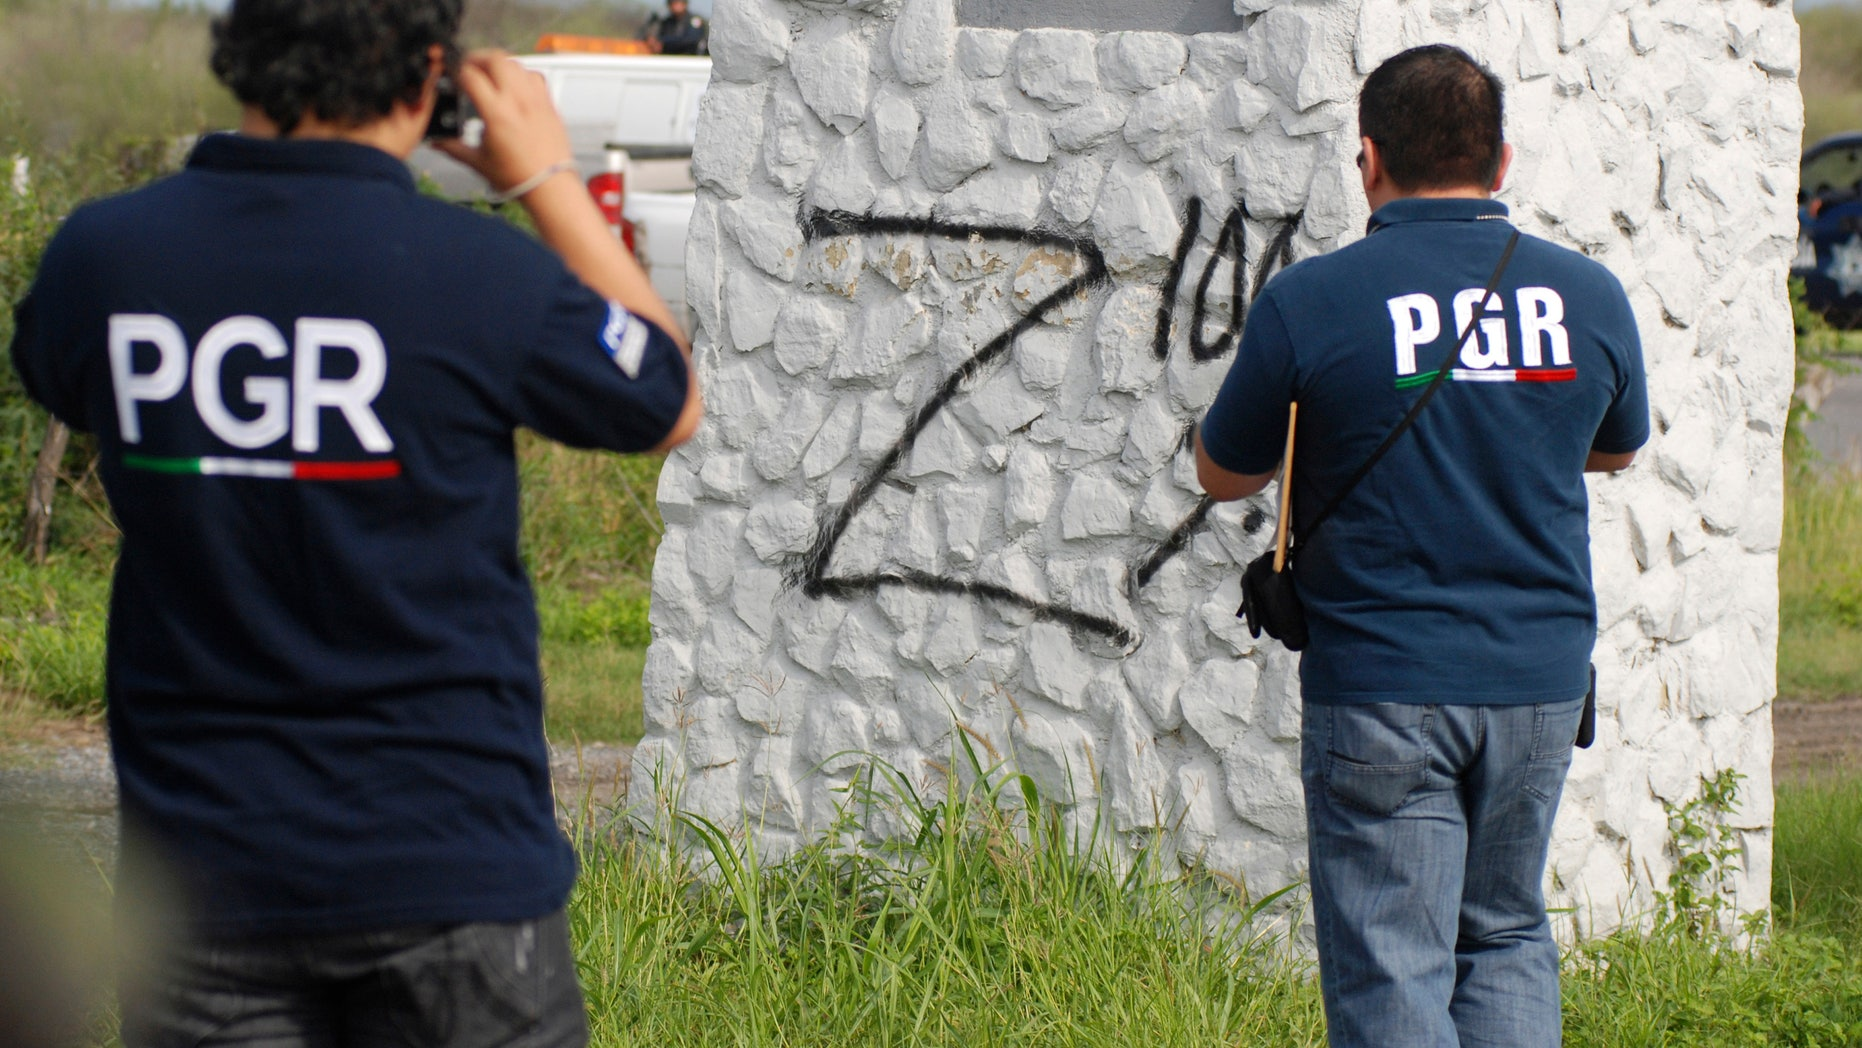 May 13: Federal agents take photographs of a sprayed 'Z,' the symbol of Zetas drug cartel, on a pillar at a crime scene in the municipality of Cadereyta.